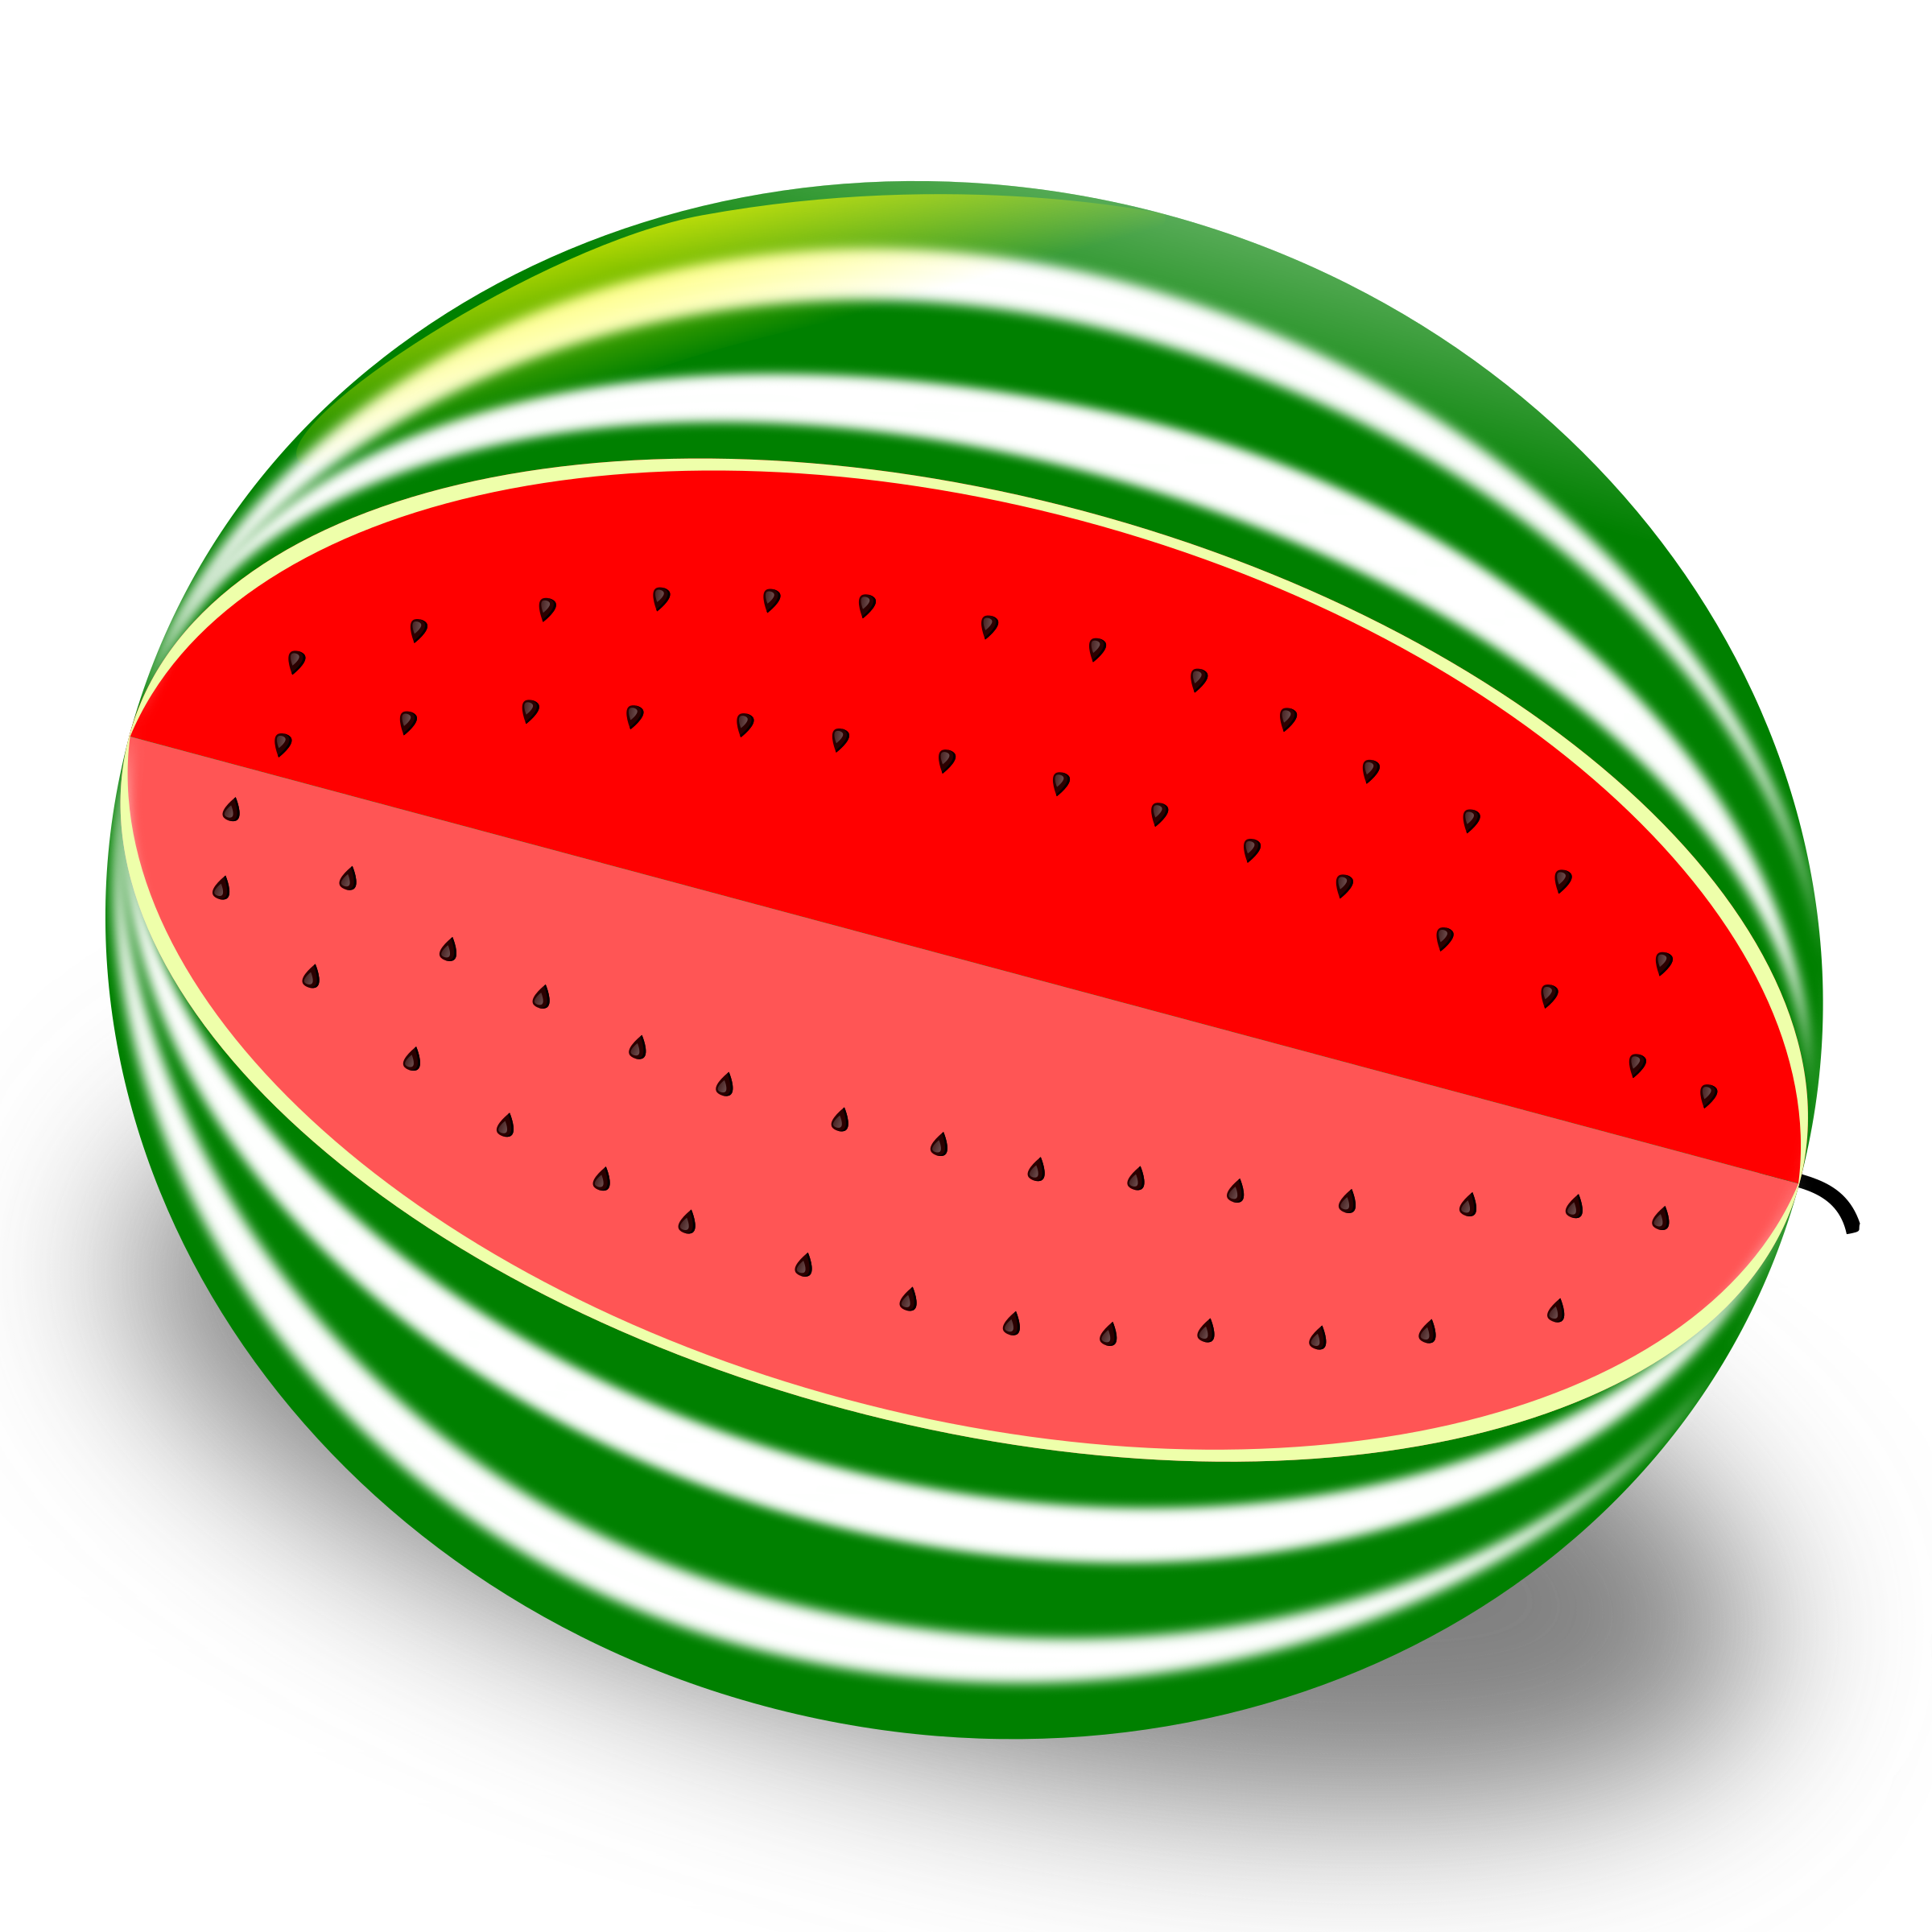 Clipart melone svg free Watermelon Vector clipart image - Free stock photo - Public Domain ... svg free